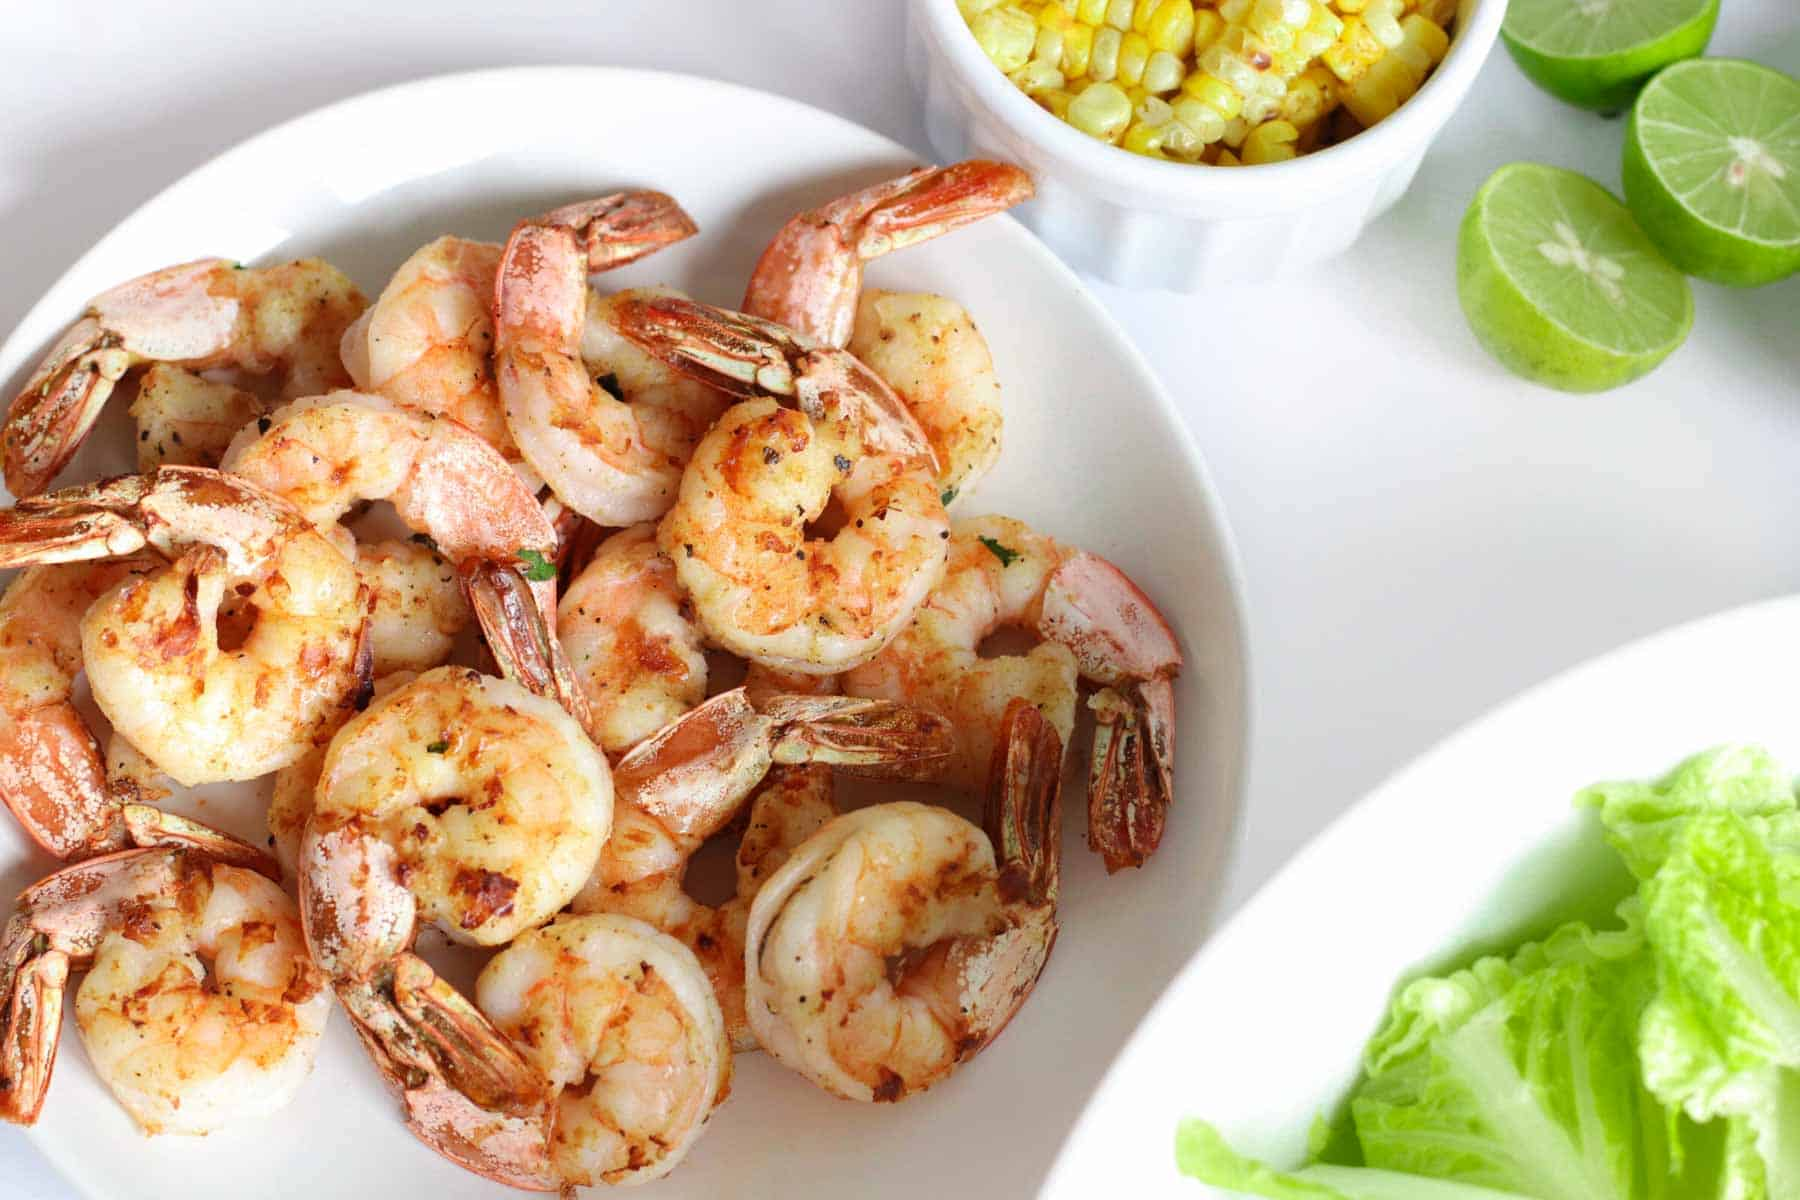 grilled shrimp in a bowl next to a small bowl with the grilled corn cut off the cob